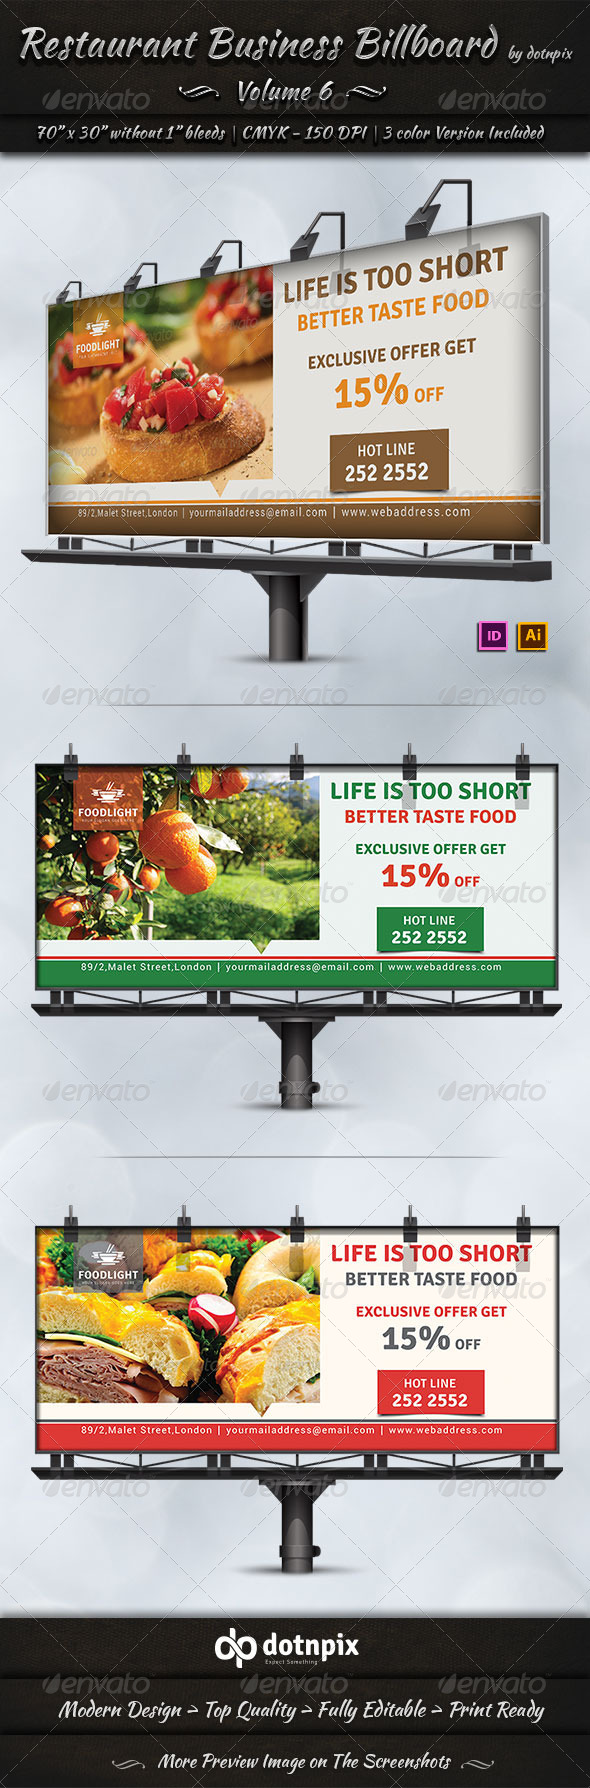 GraphicRiver Restaurant Business Billboard Volume 6 7666067